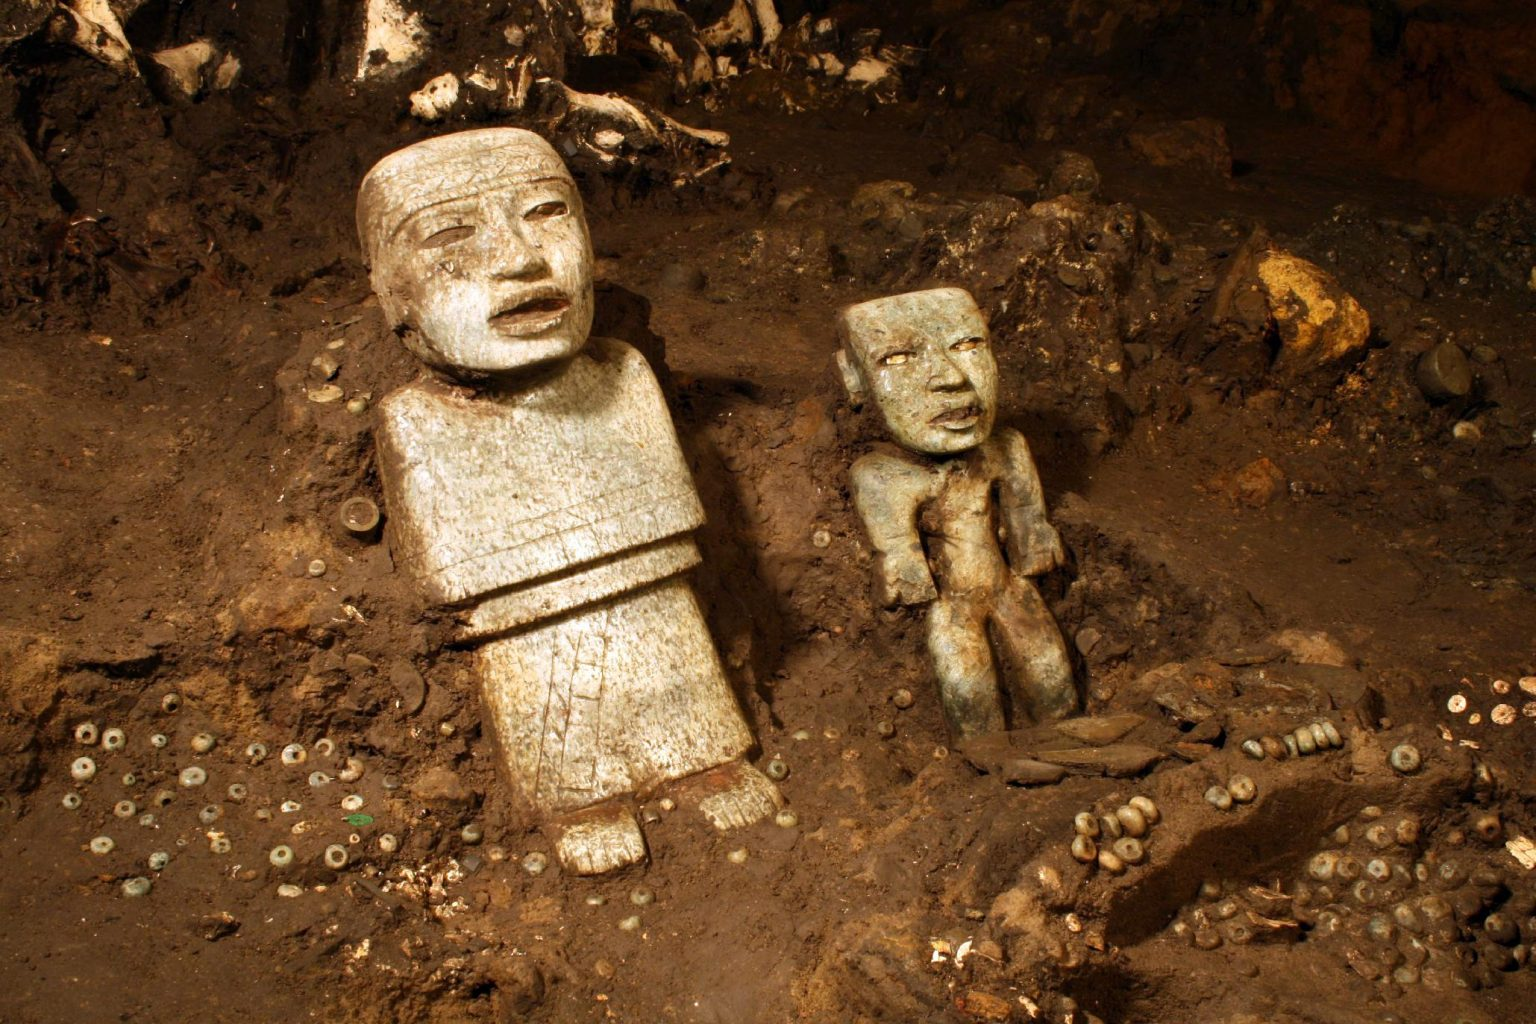 Offerings to the gods discovered in 2011. Credit: La Jornada